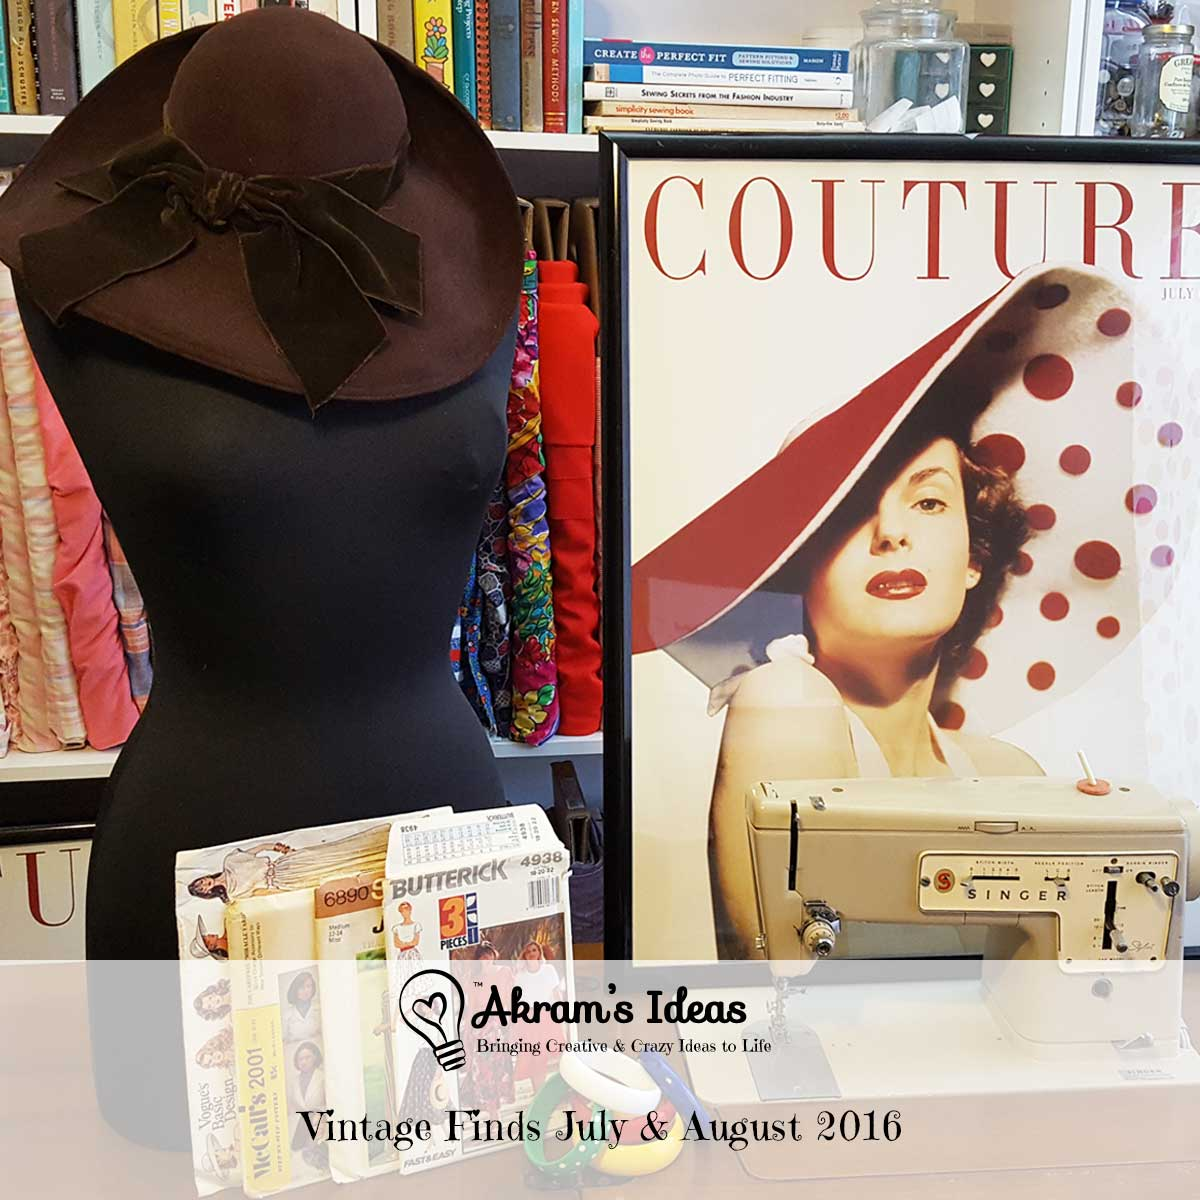 A review of my latest vintage finds (haul) for July 2016.